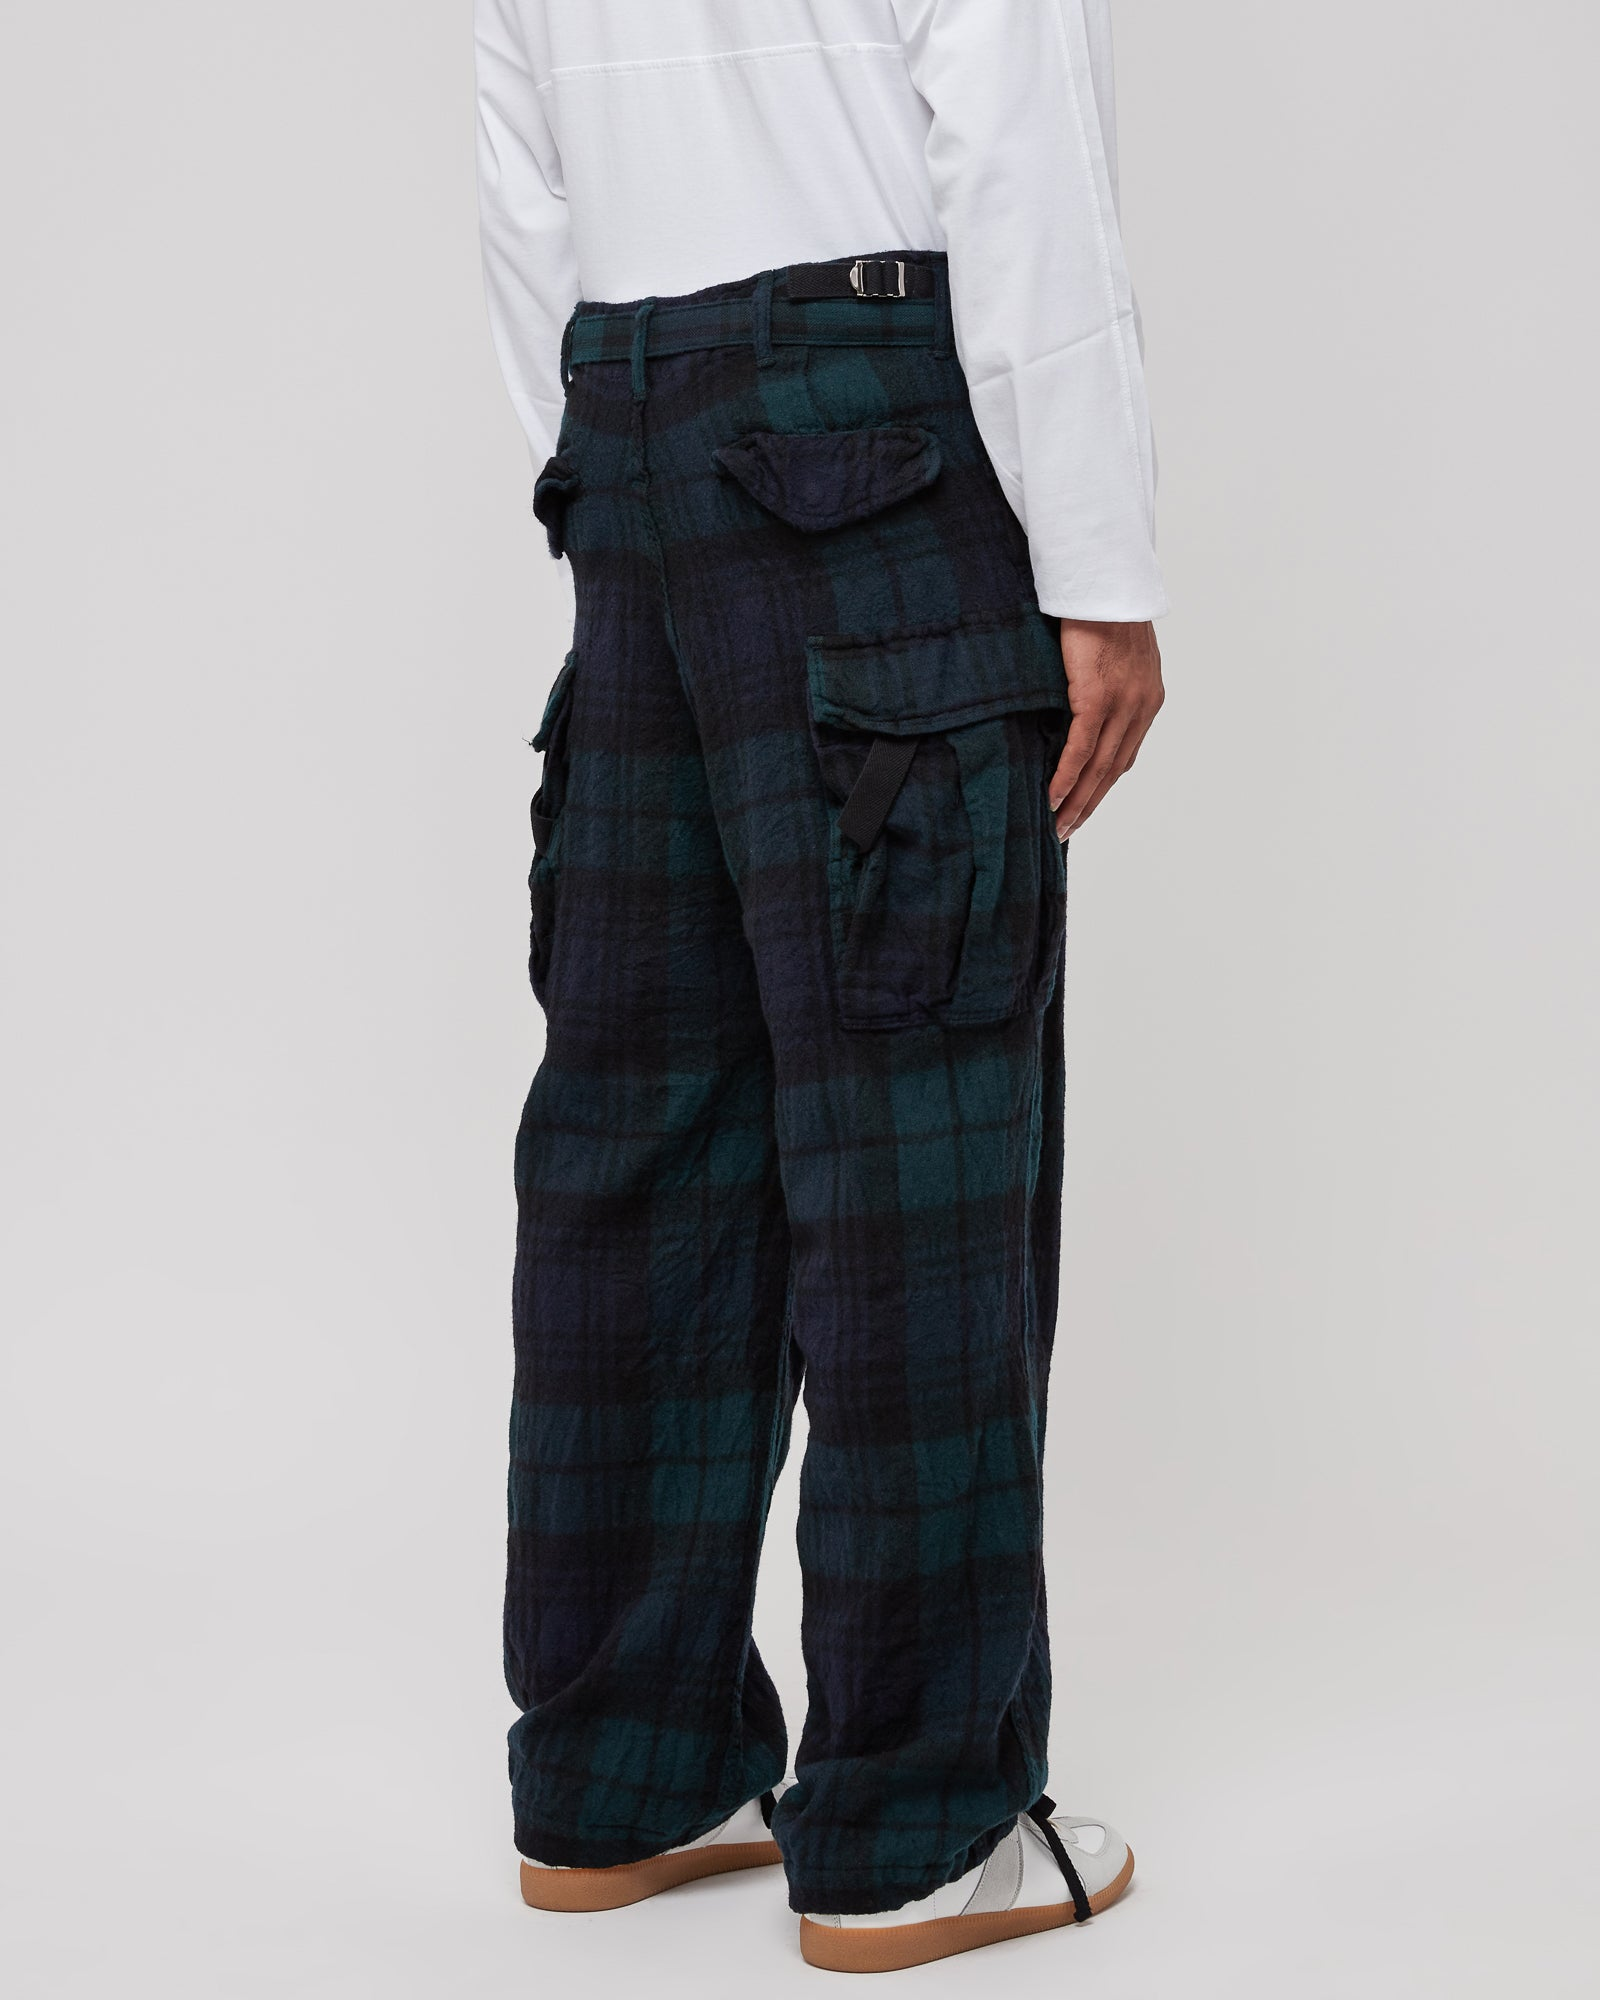 Check Shrivel Pants in Black & Green